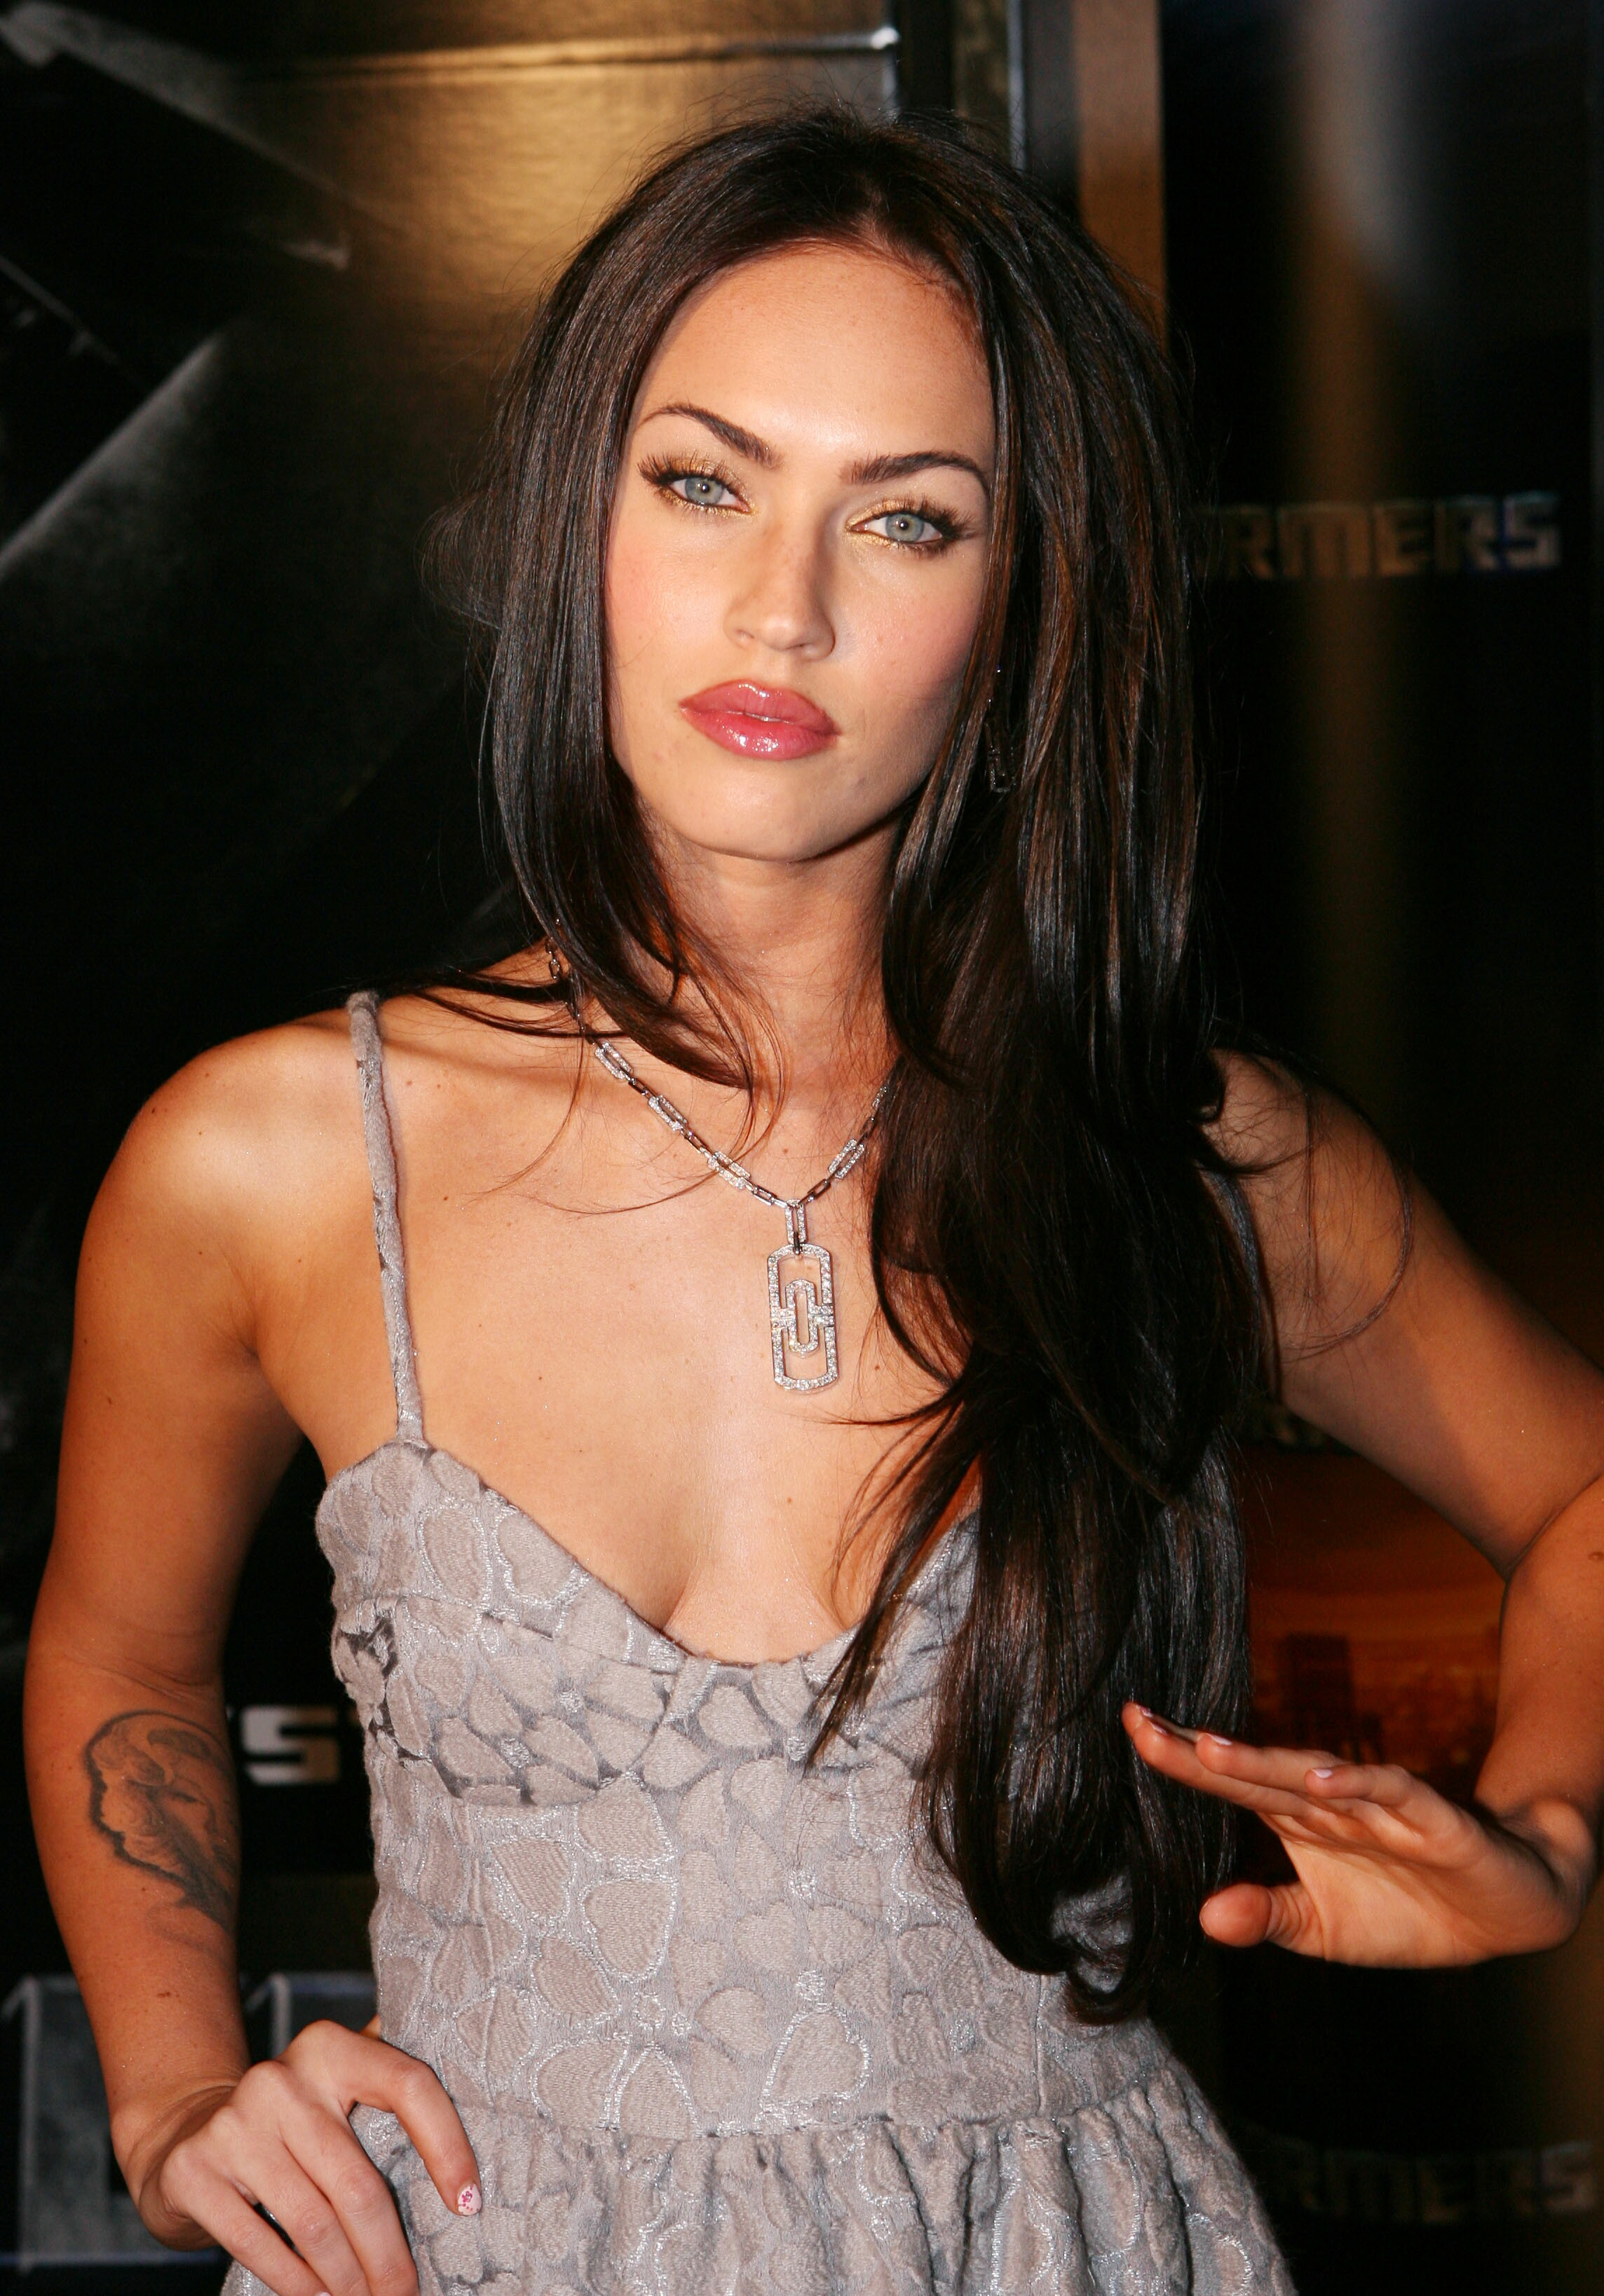 megan hair style megan fox photo 4301 of 11729 pics wallpaper photo 1494